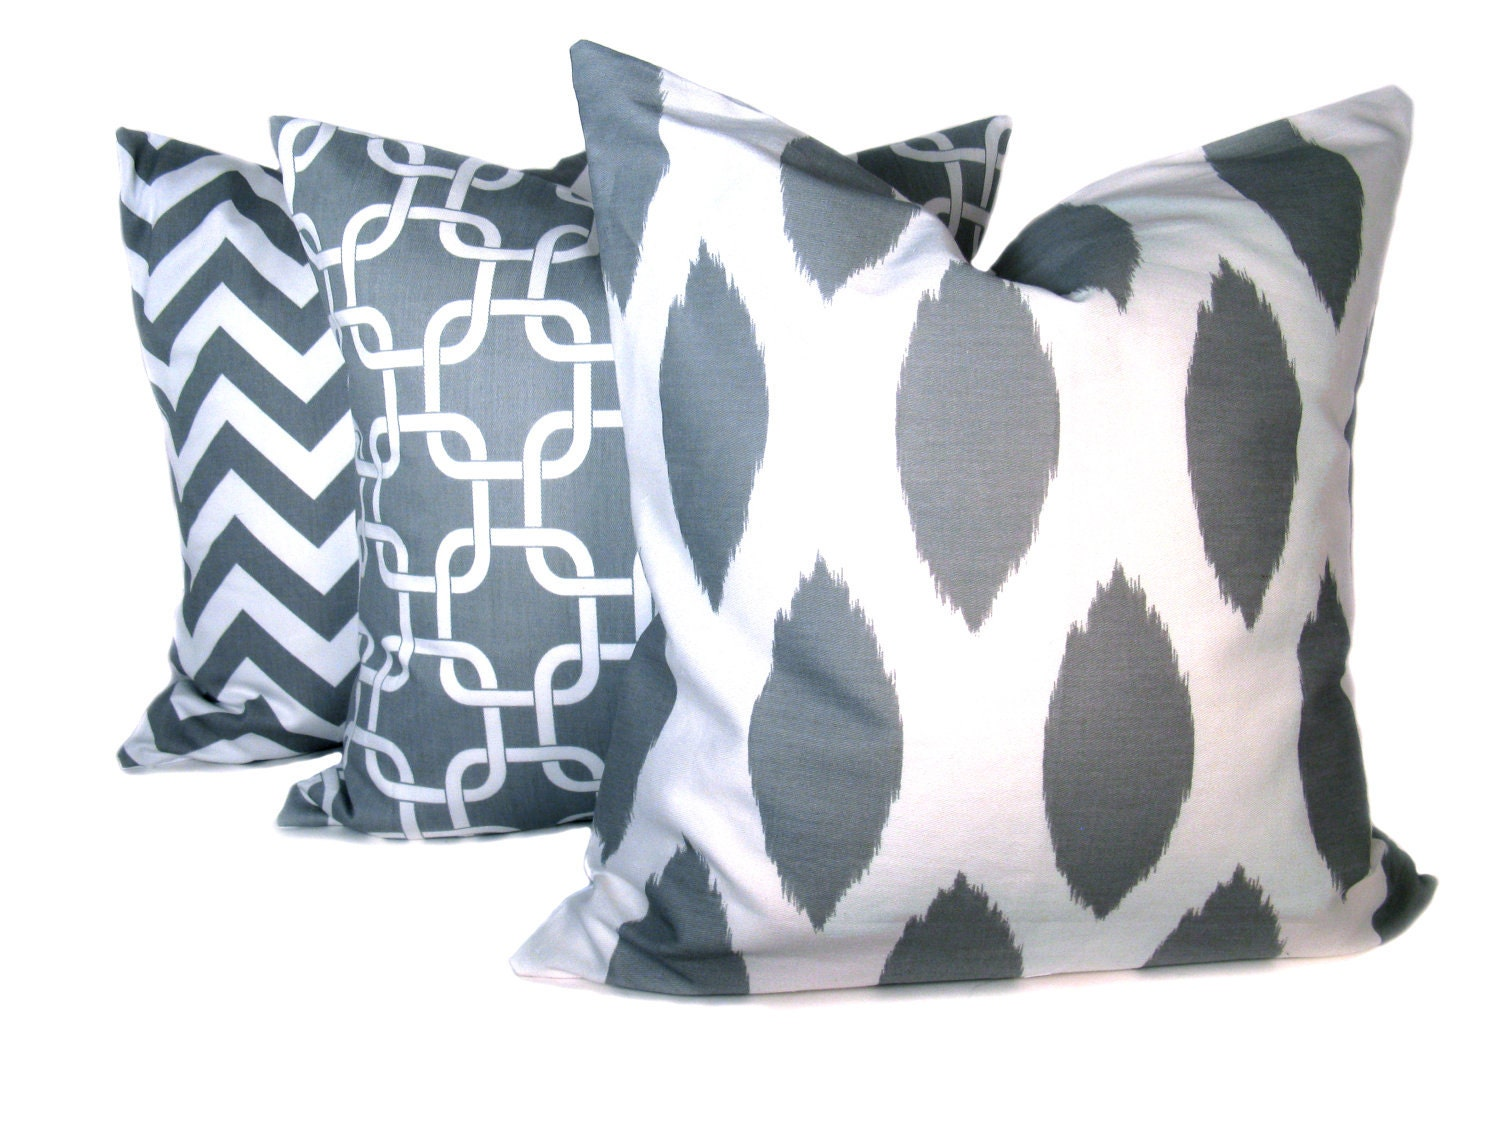 20x20 Throw Pillows Covers : Ikat Pillow. Throw Pillow Covers .20x20 inch. Grey by EastAndNest